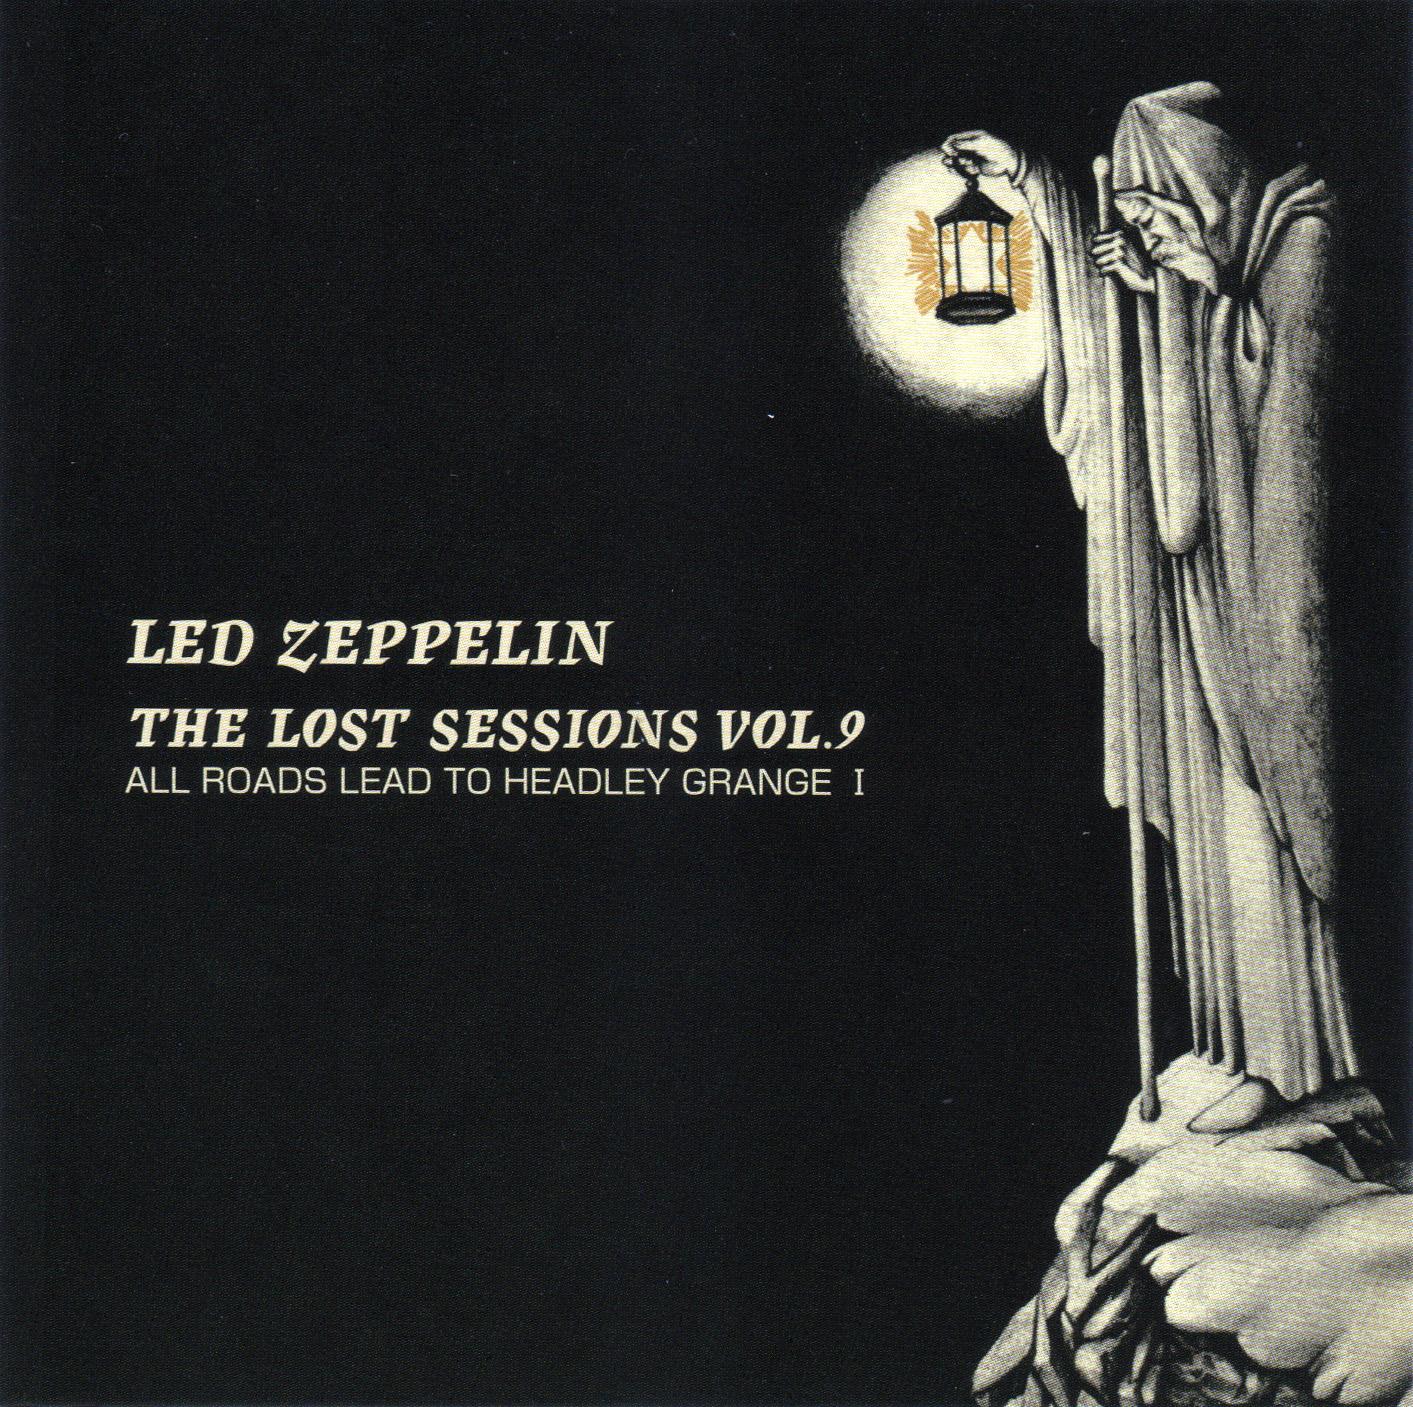 Led Zeppelin - The Lost Sessions Vol 9 (EVSD) [FLAC] - Guitars101